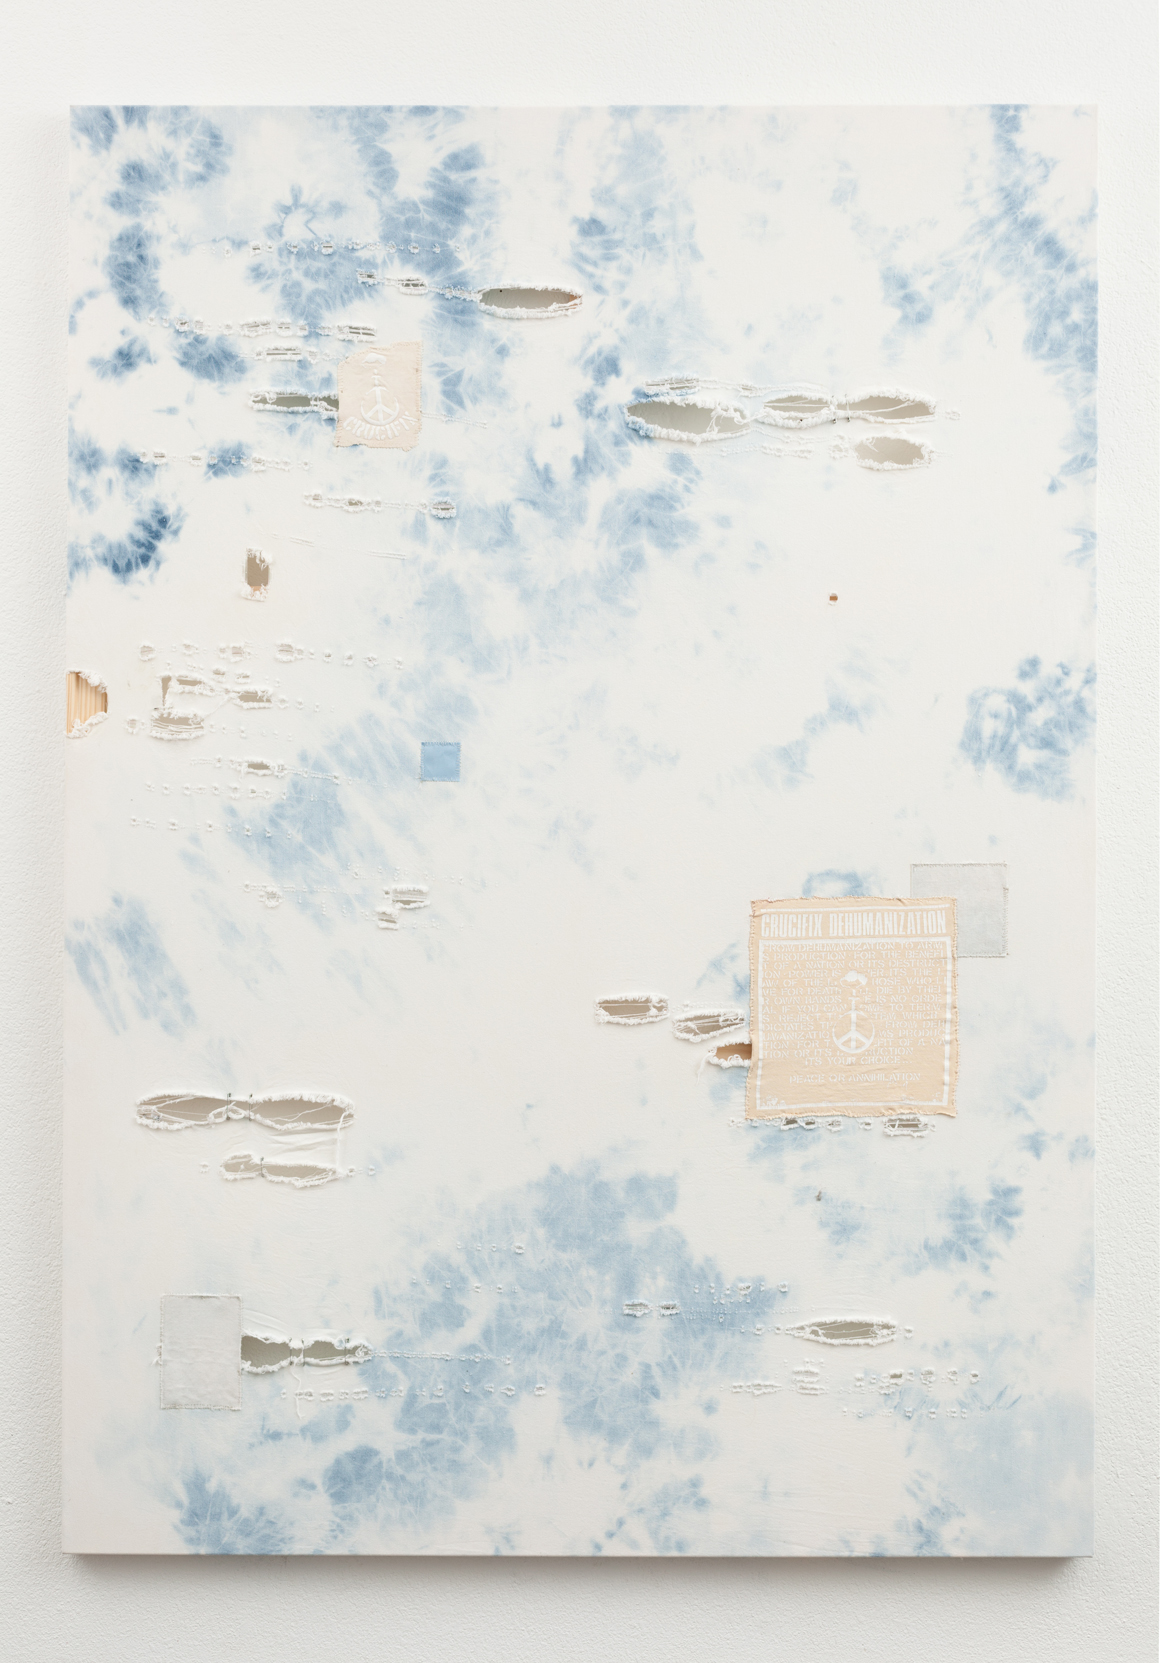 """<p><span class=""""name"""">Zach Reini</span><br><em>Untitled Crucifix (Power Is Power)</em><span class='media'>Bleach, dental floss, safety pins, canvas patches on denim</span>76 x 54 in (193 x 137.2 cm)<br>2015<br></p>"""